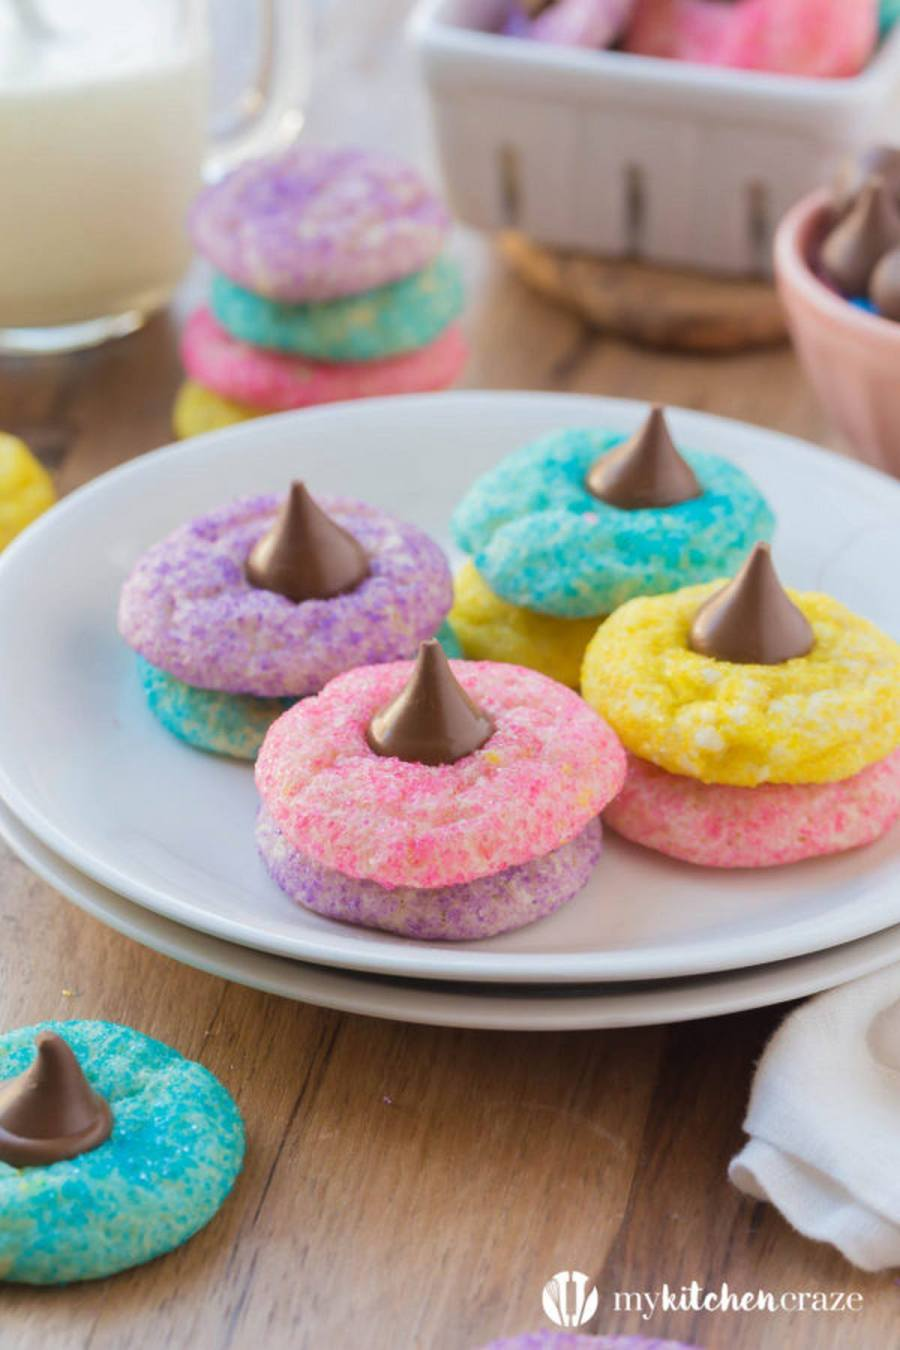 Don't waste your time decorating eggs when you could be decorating Easter cookies.